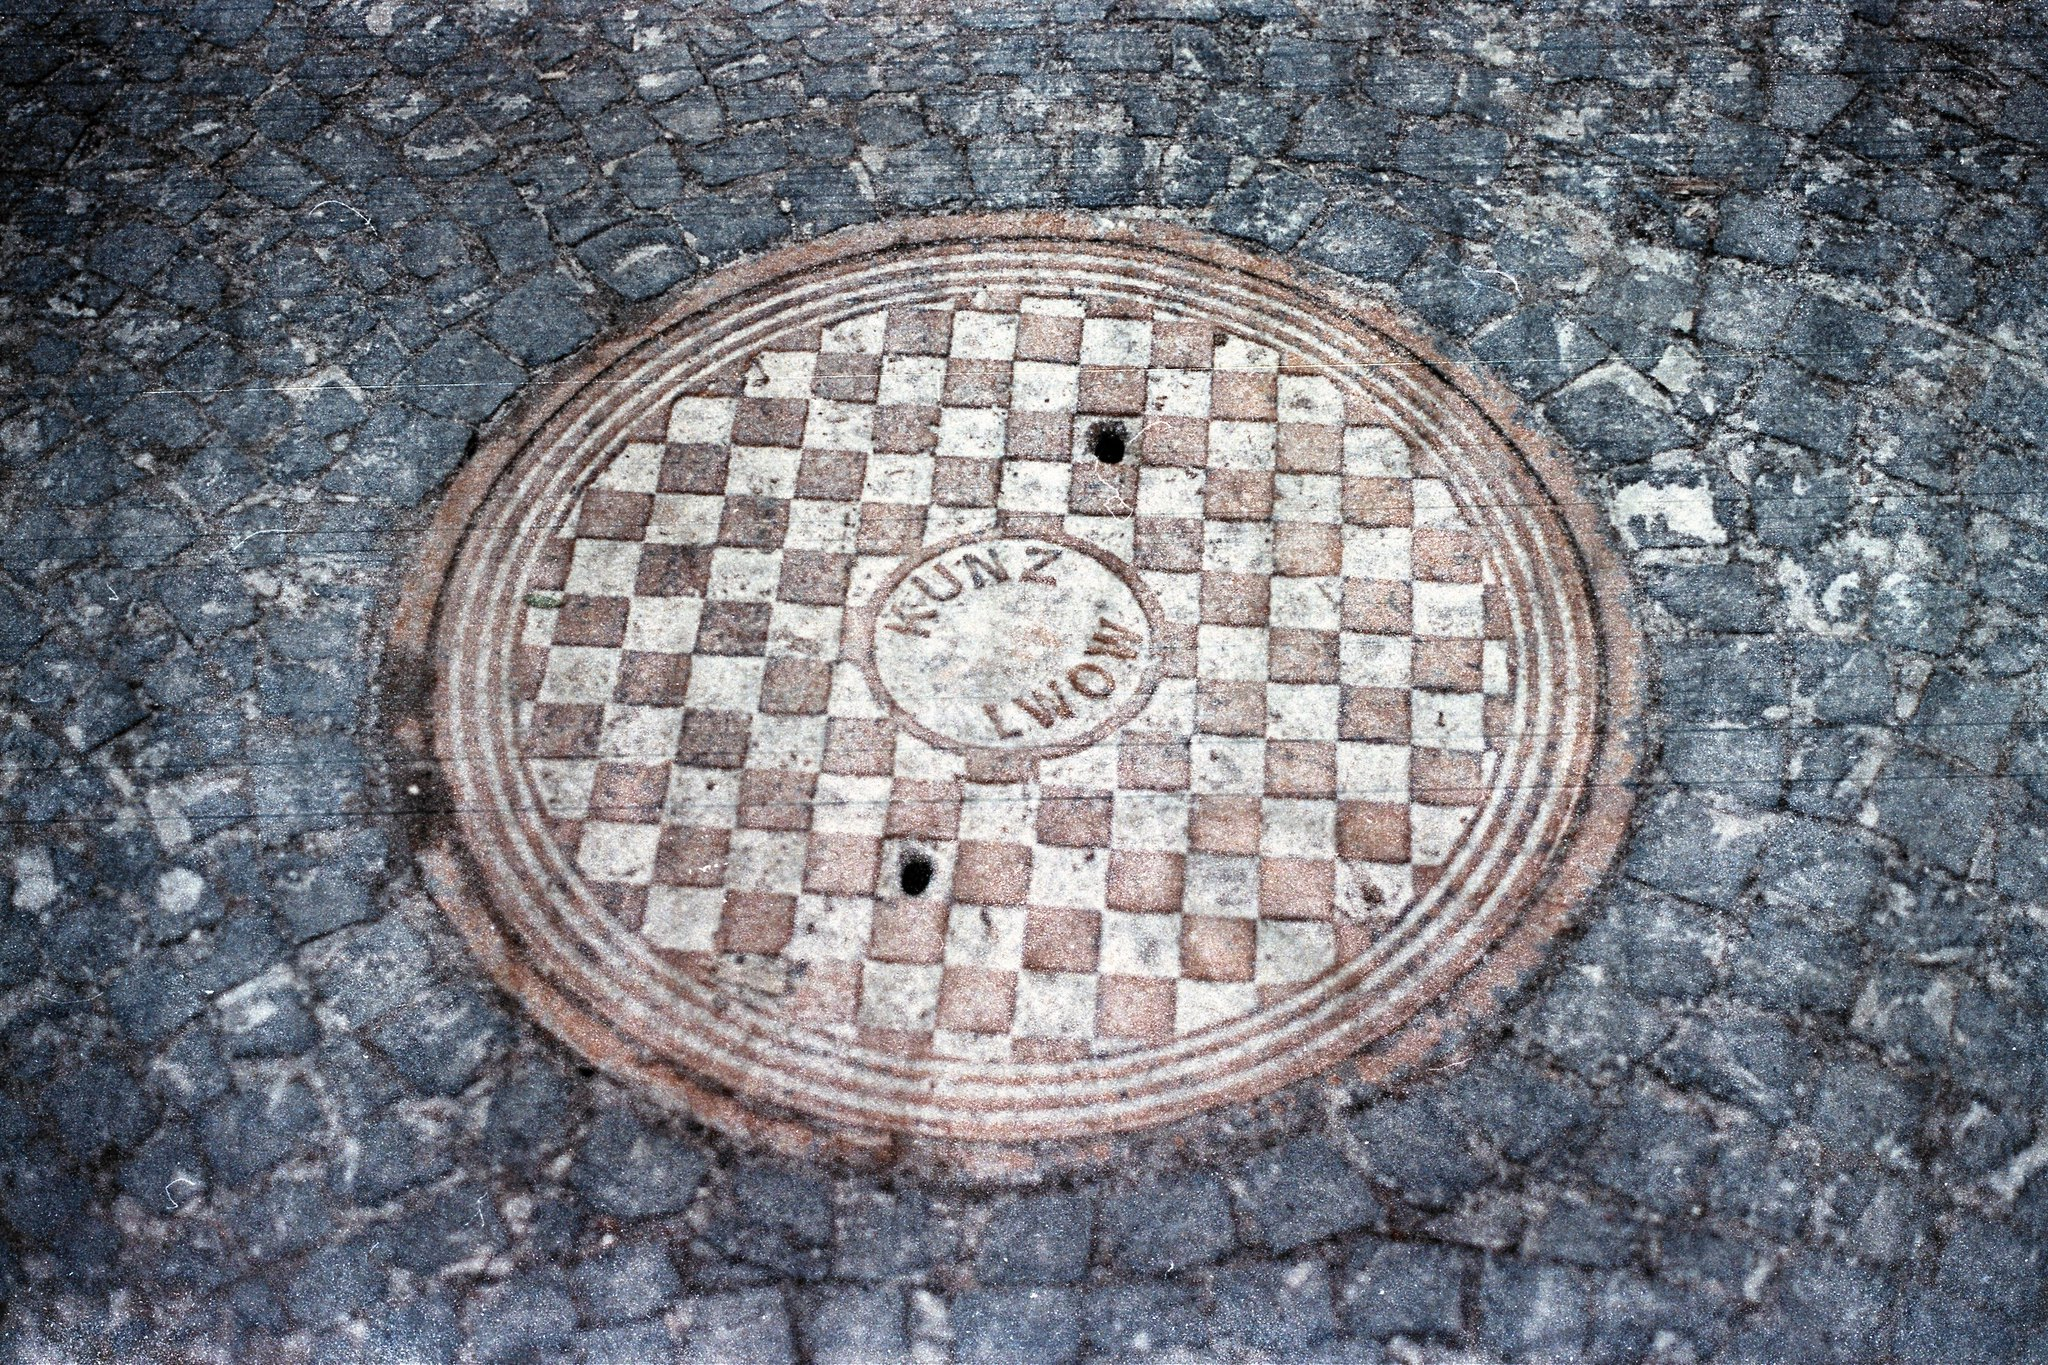 Kunz Lwów - one of my favourite manholes